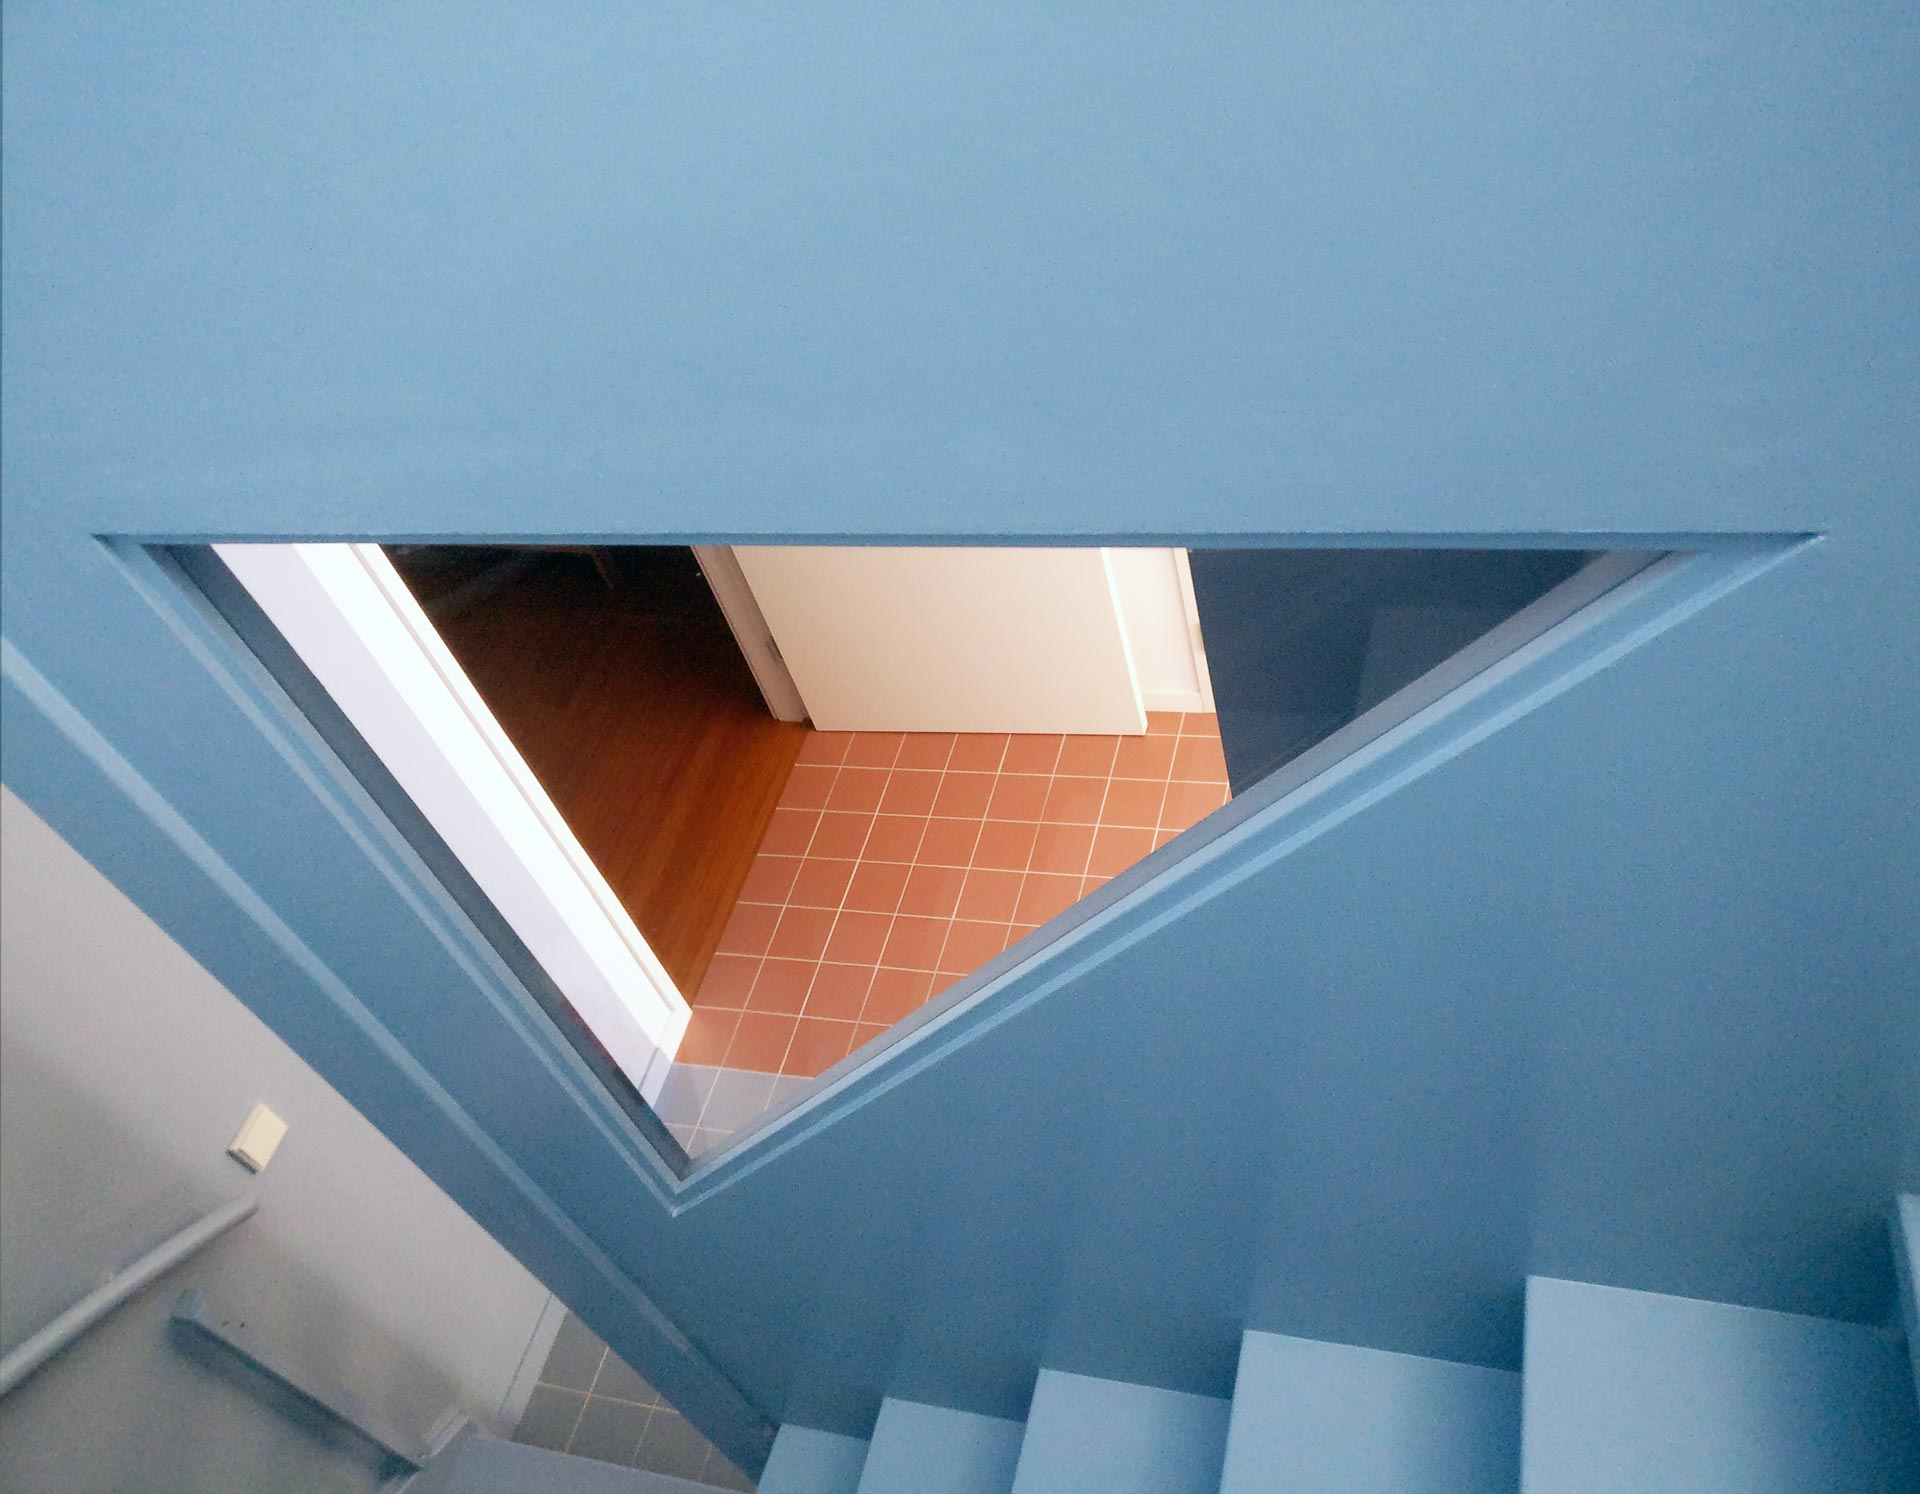 Lagado-architects-workhome-noordereiland-interior-triangular-windows-blue-stair-triangular-window-terracotta-tiles